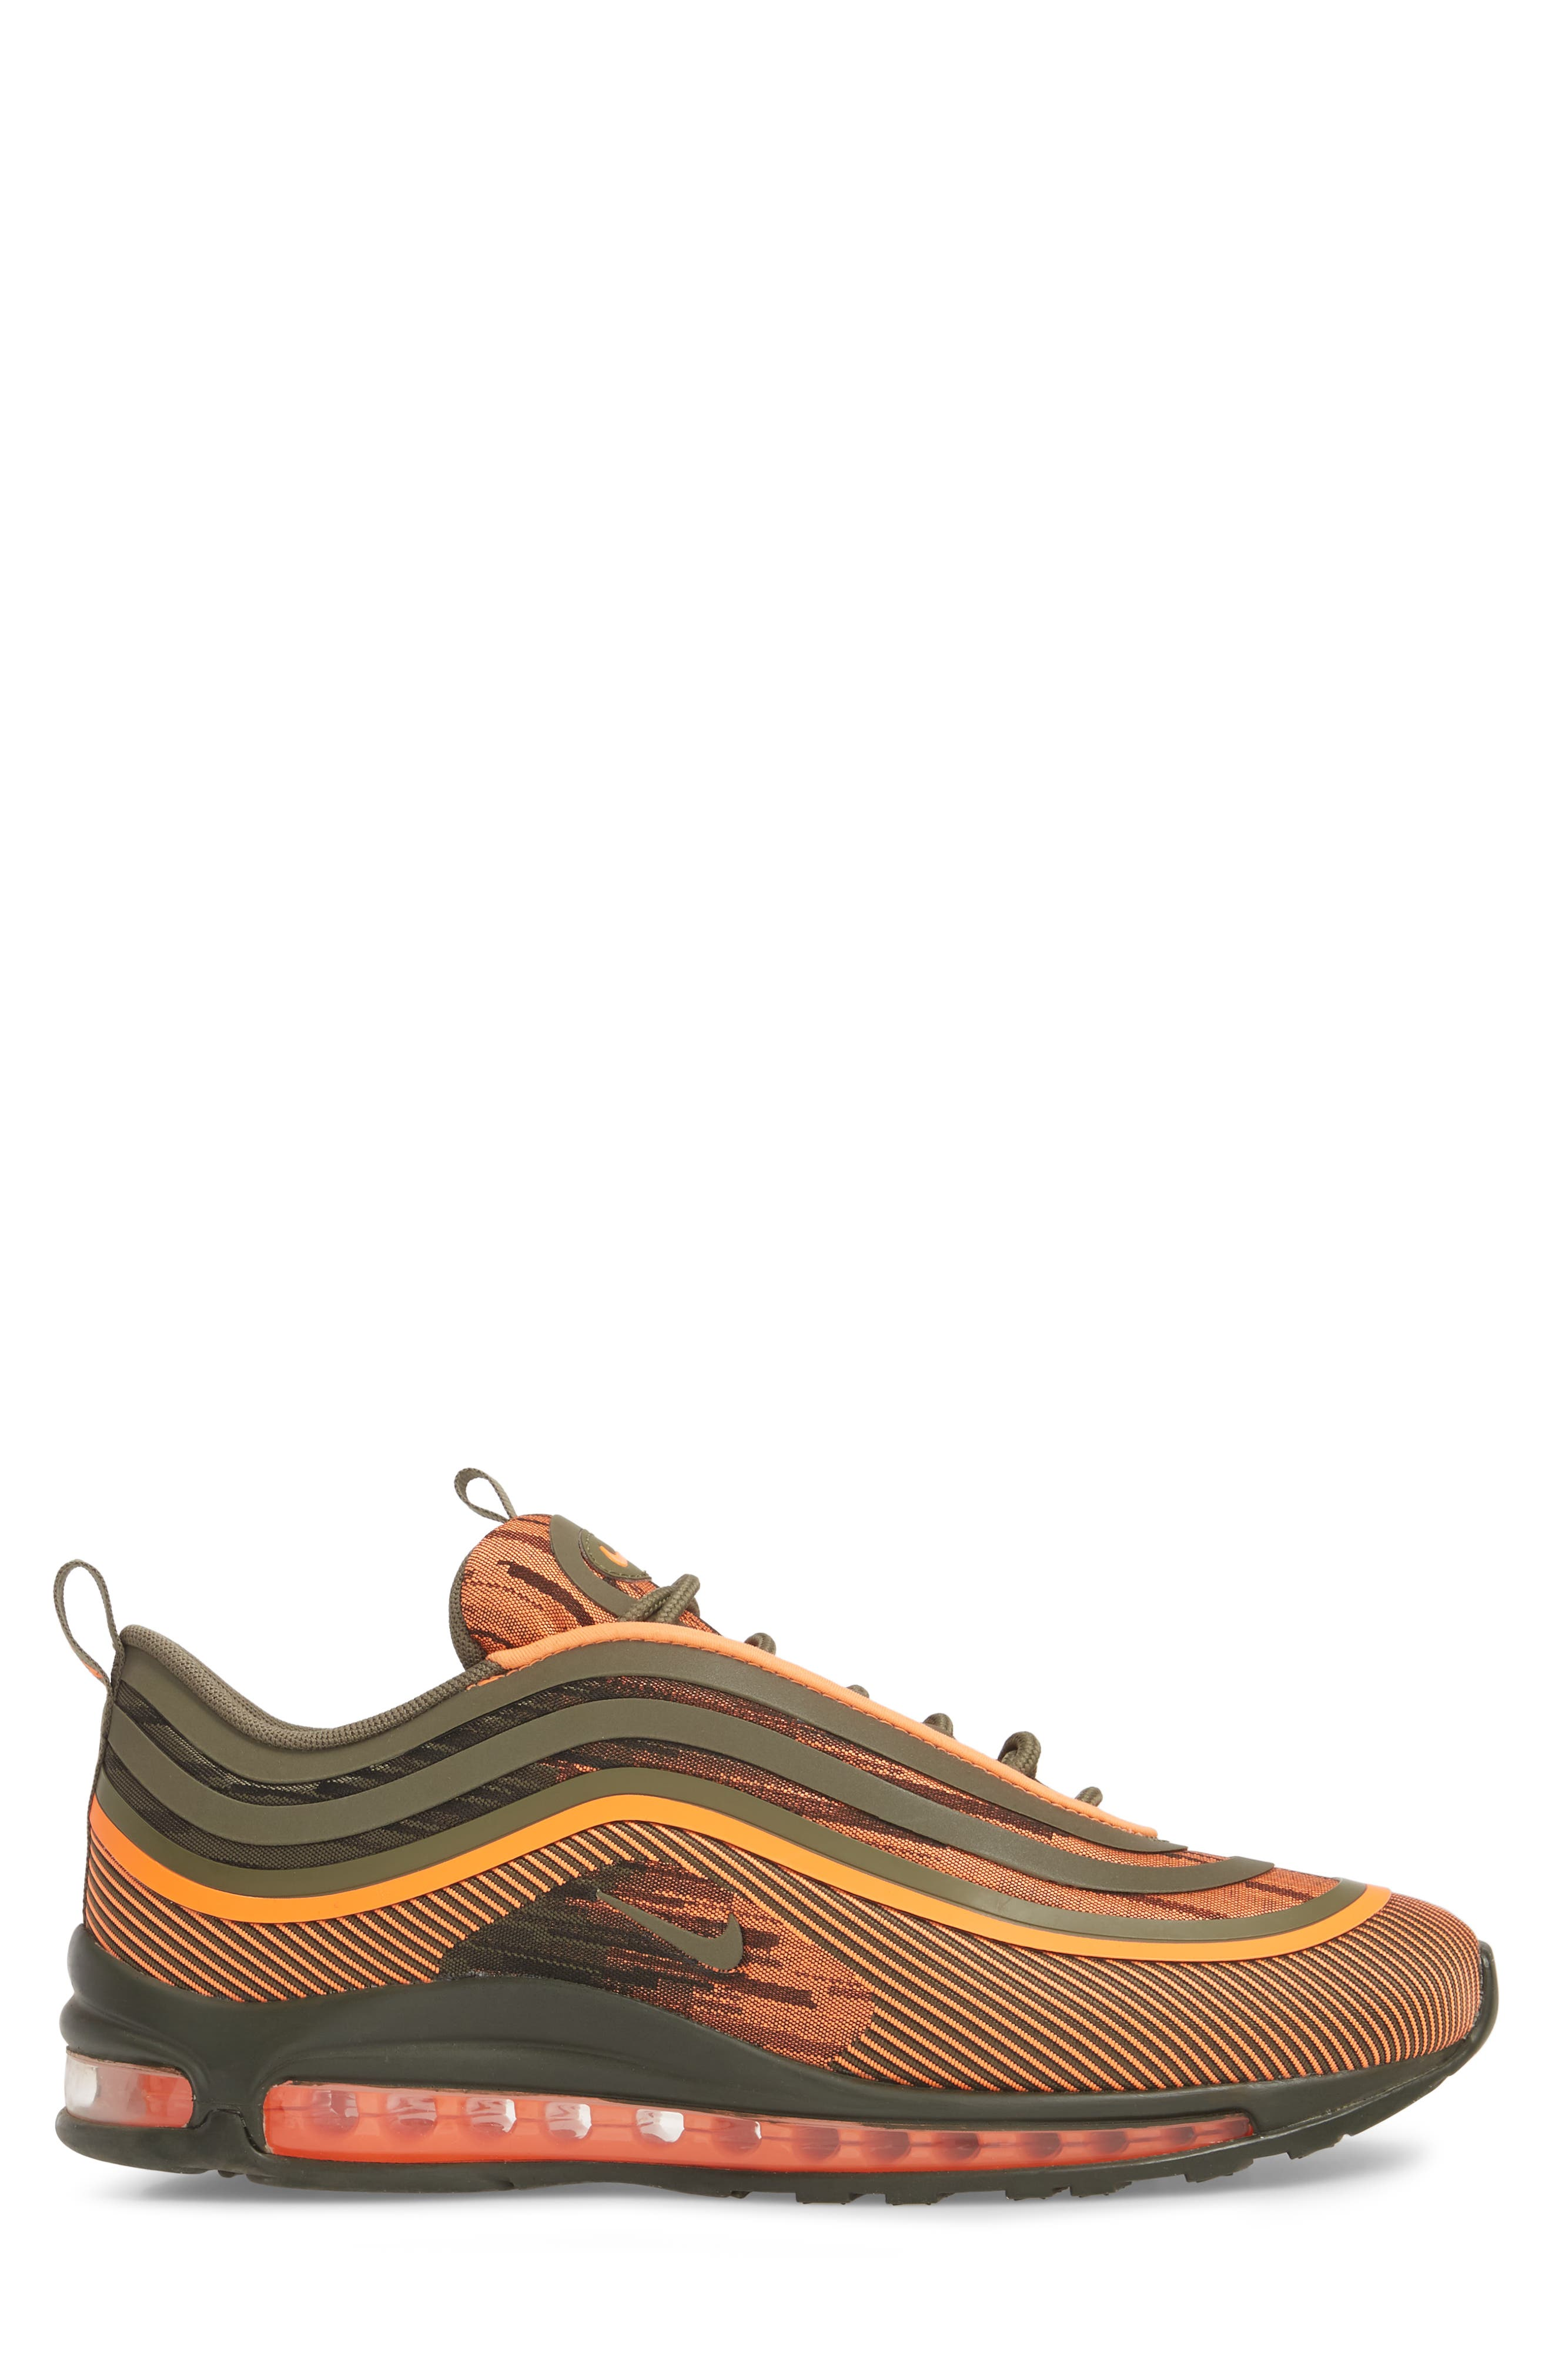 Air Max 97 Ultra '17 Sneaker,                             Alternate thumbnail 3, color,                             TOTAL ORANGE/ OLIVE/ SEQUOIA